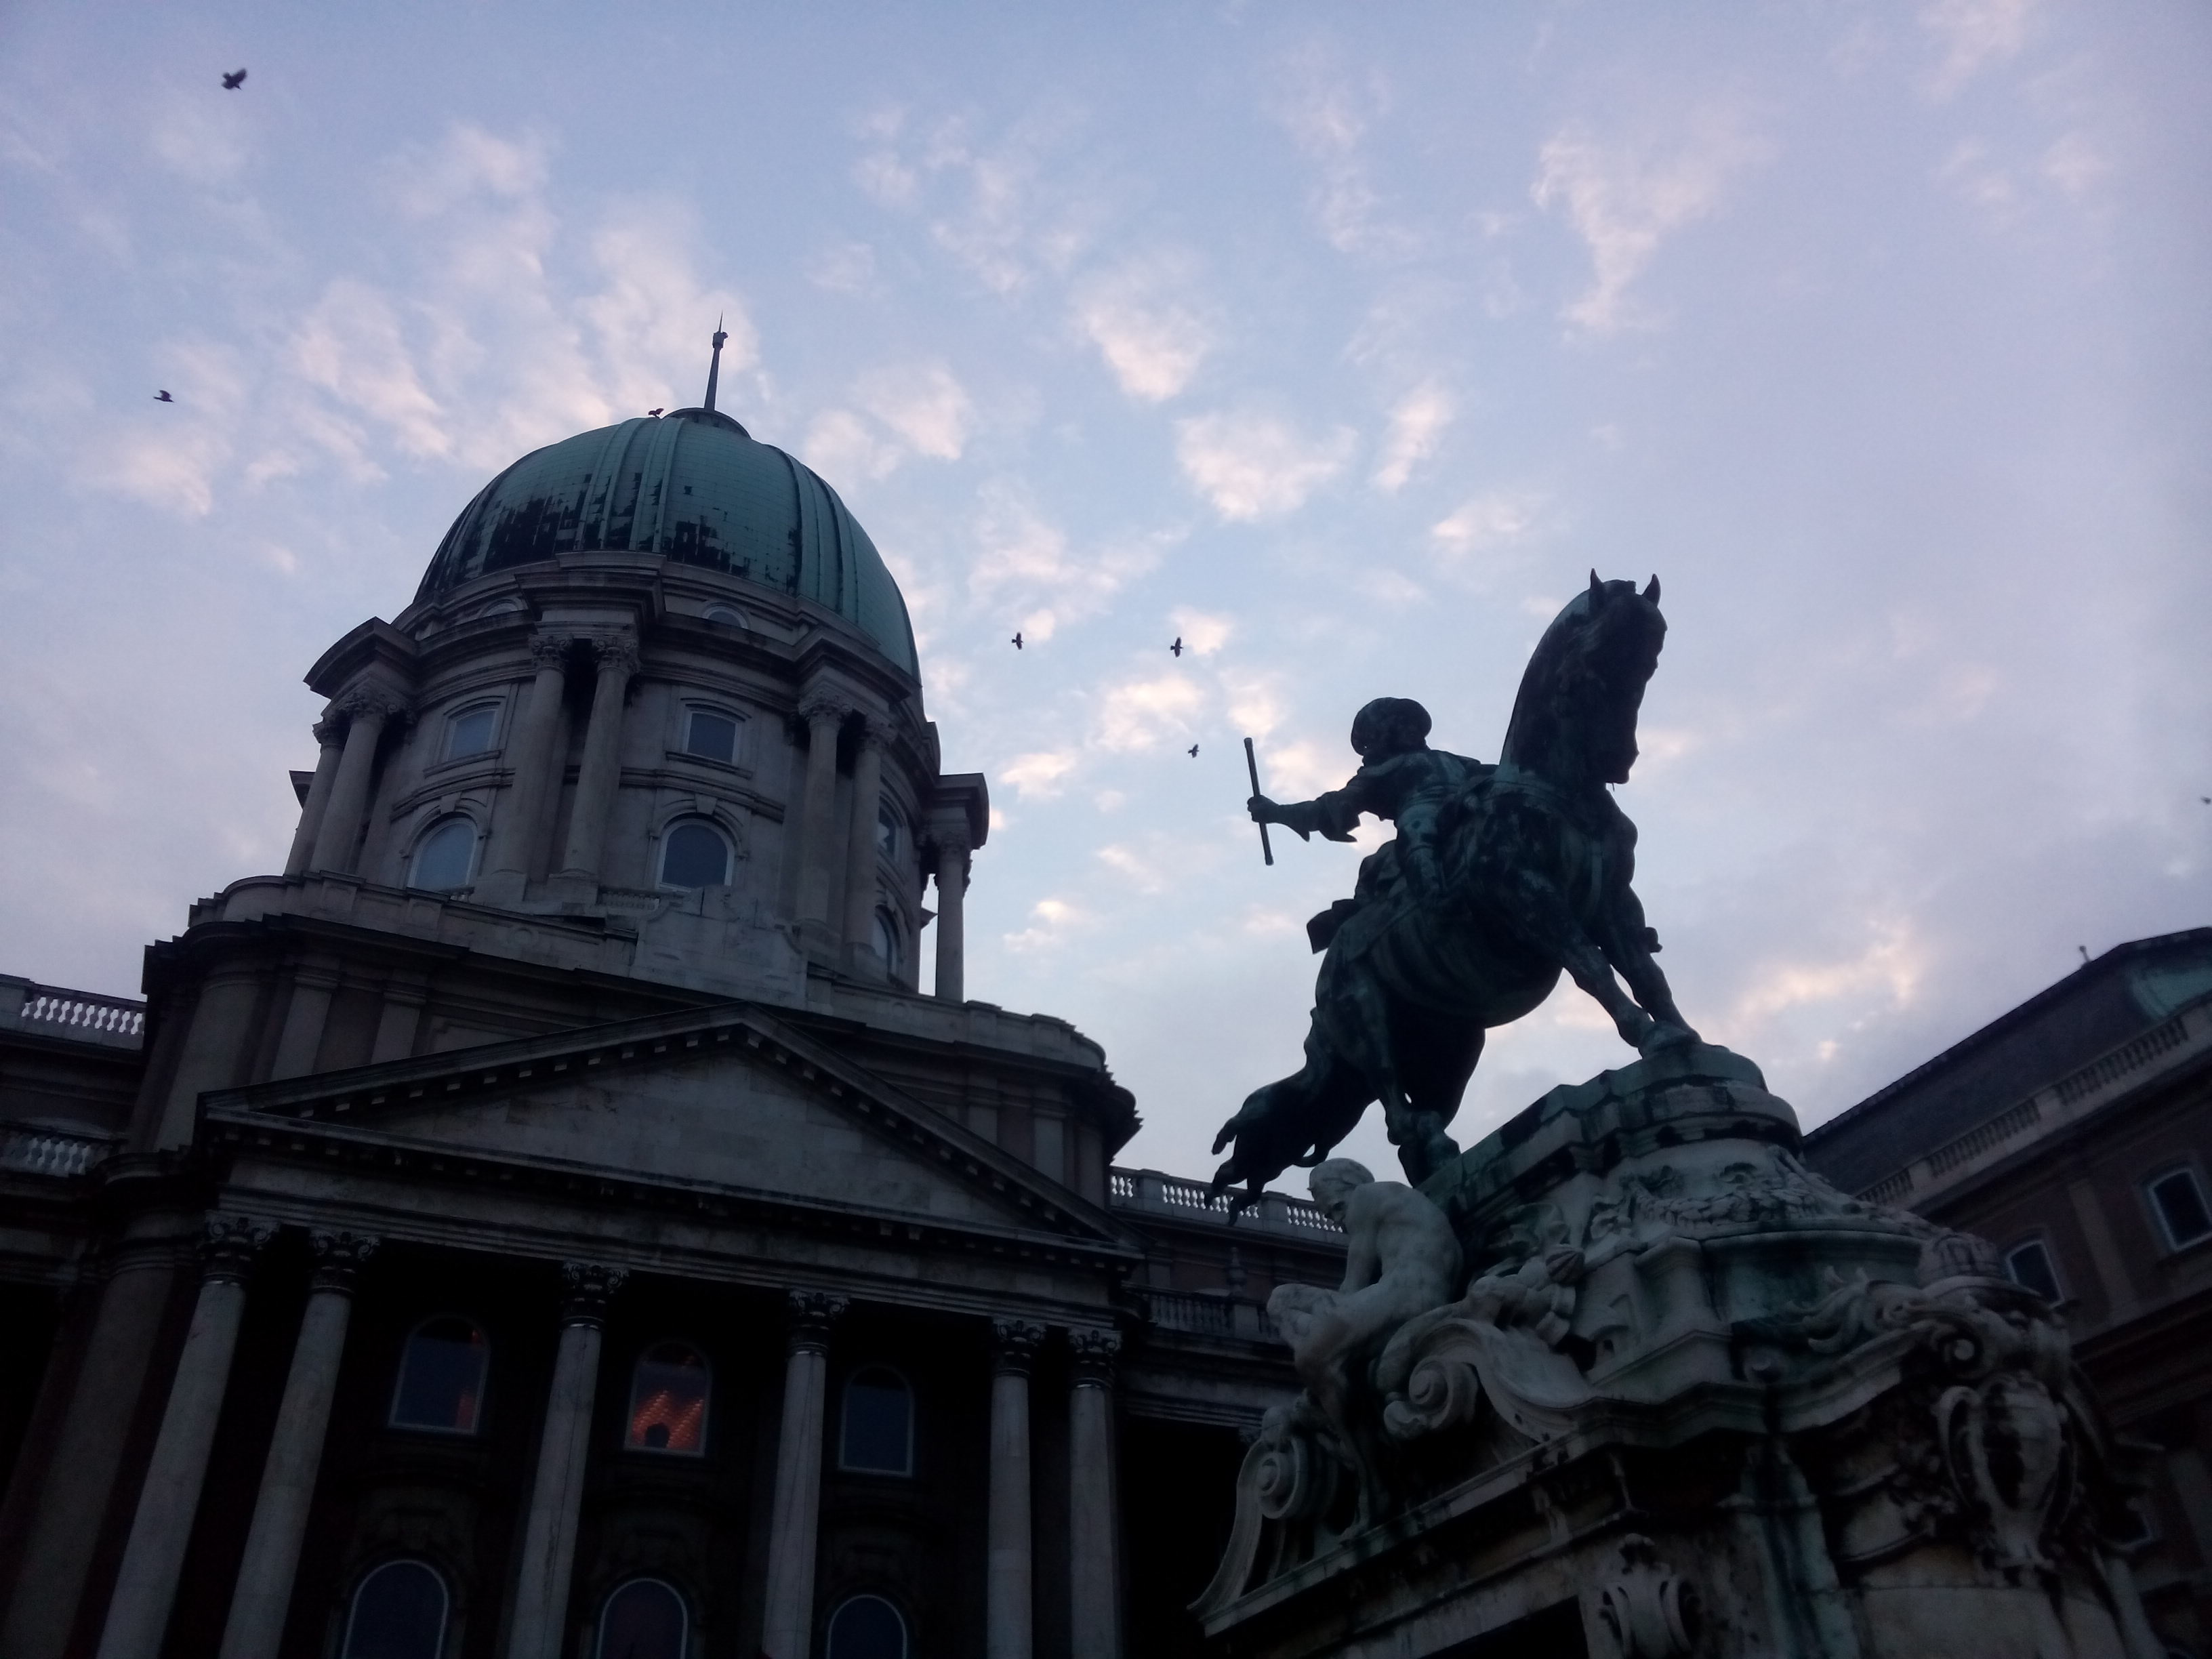 A building with a green dome behind a statue of a man on a horse with a sword